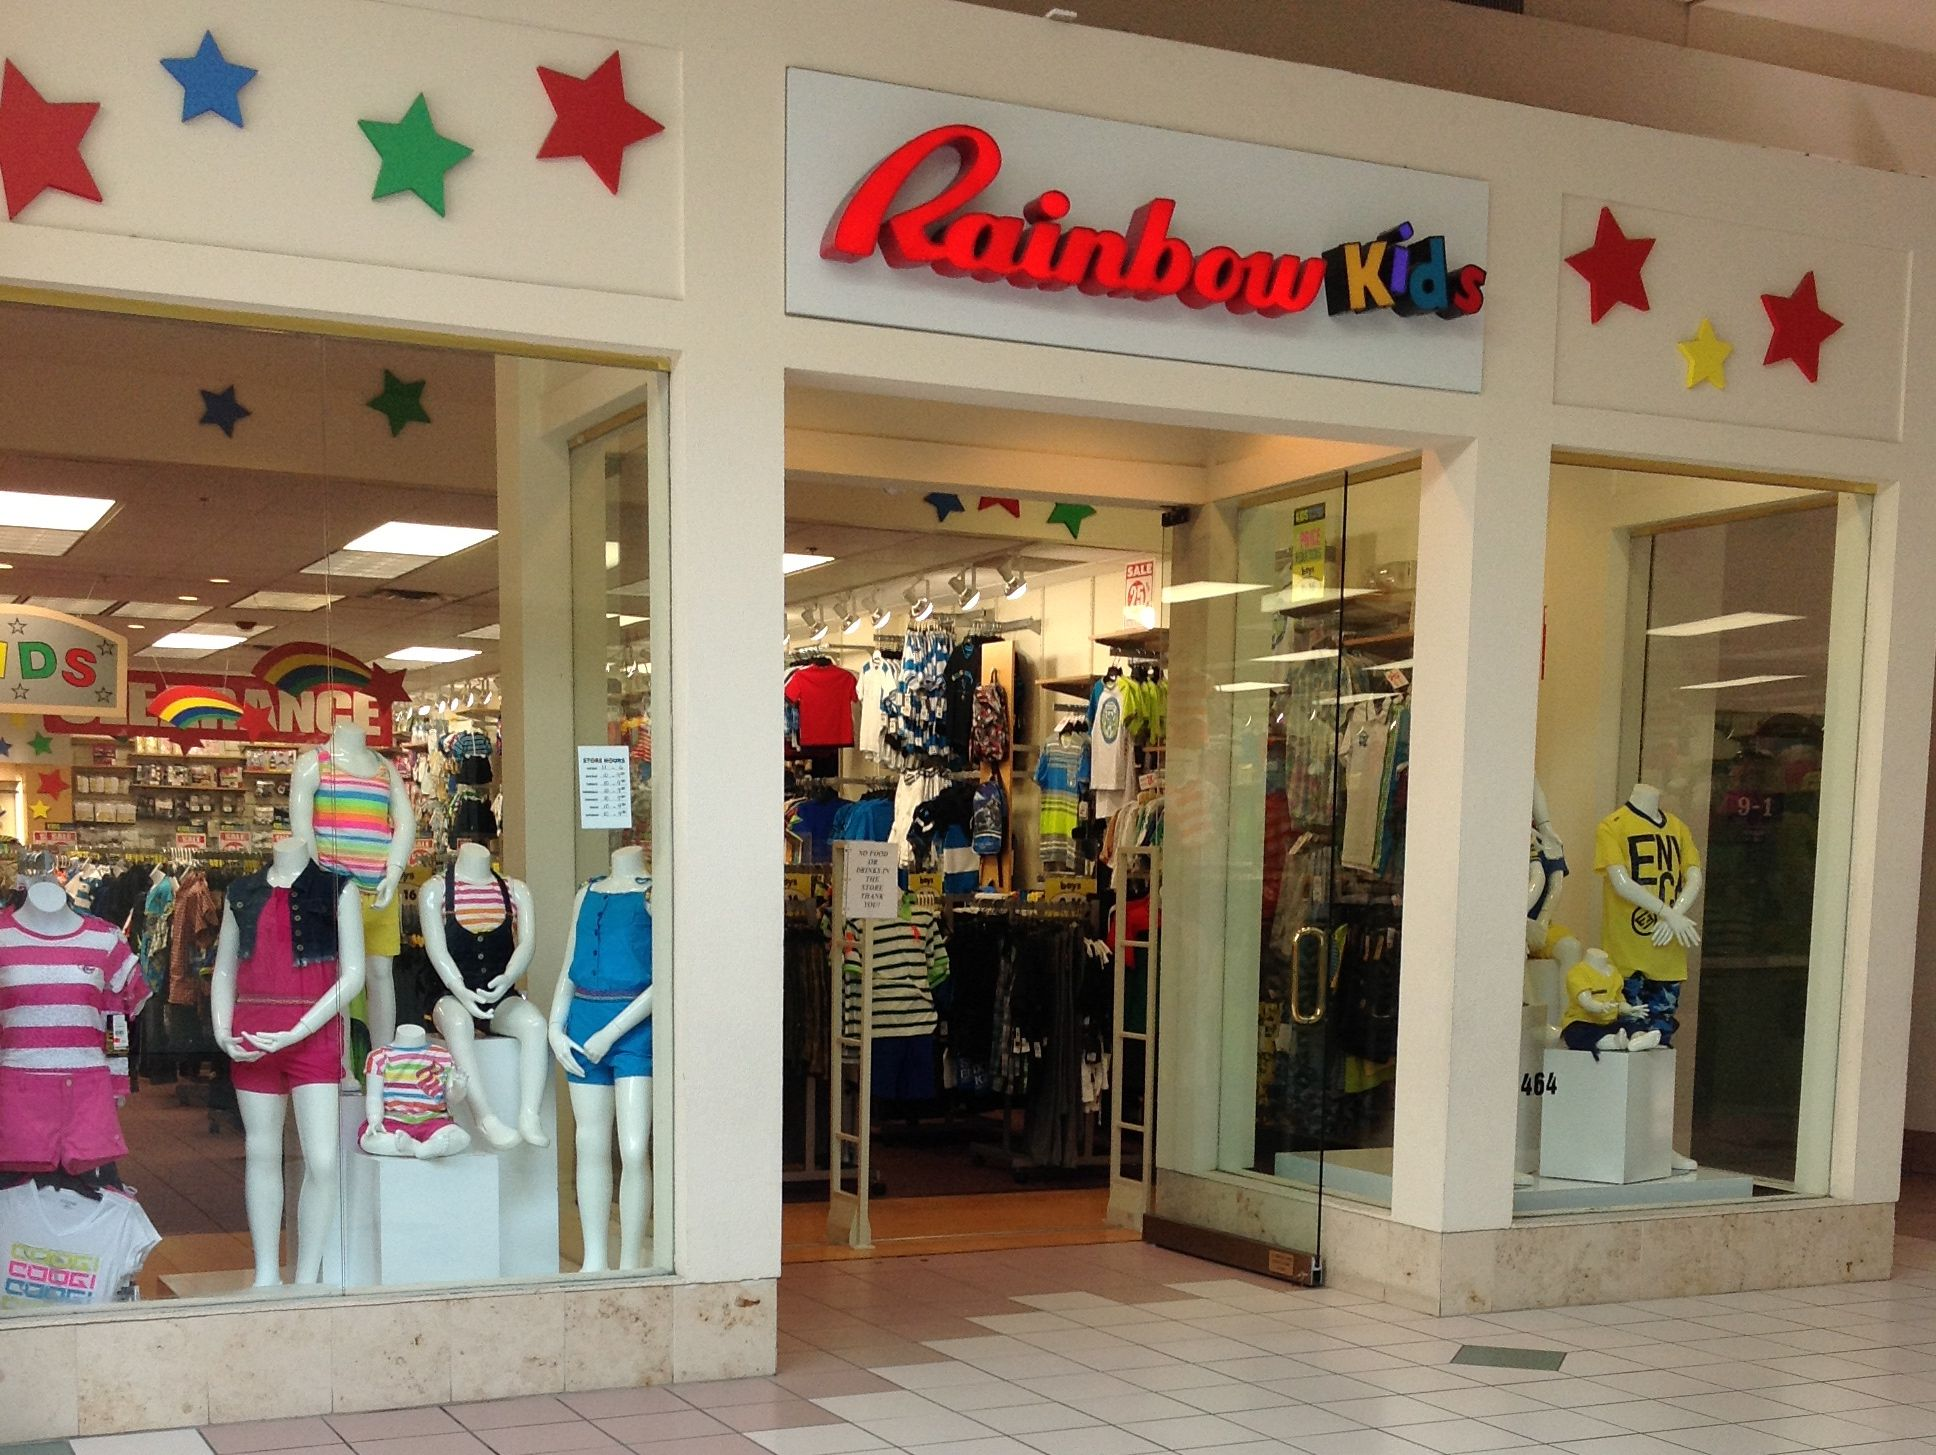 Childrens clothing can be found at rainbow kids with